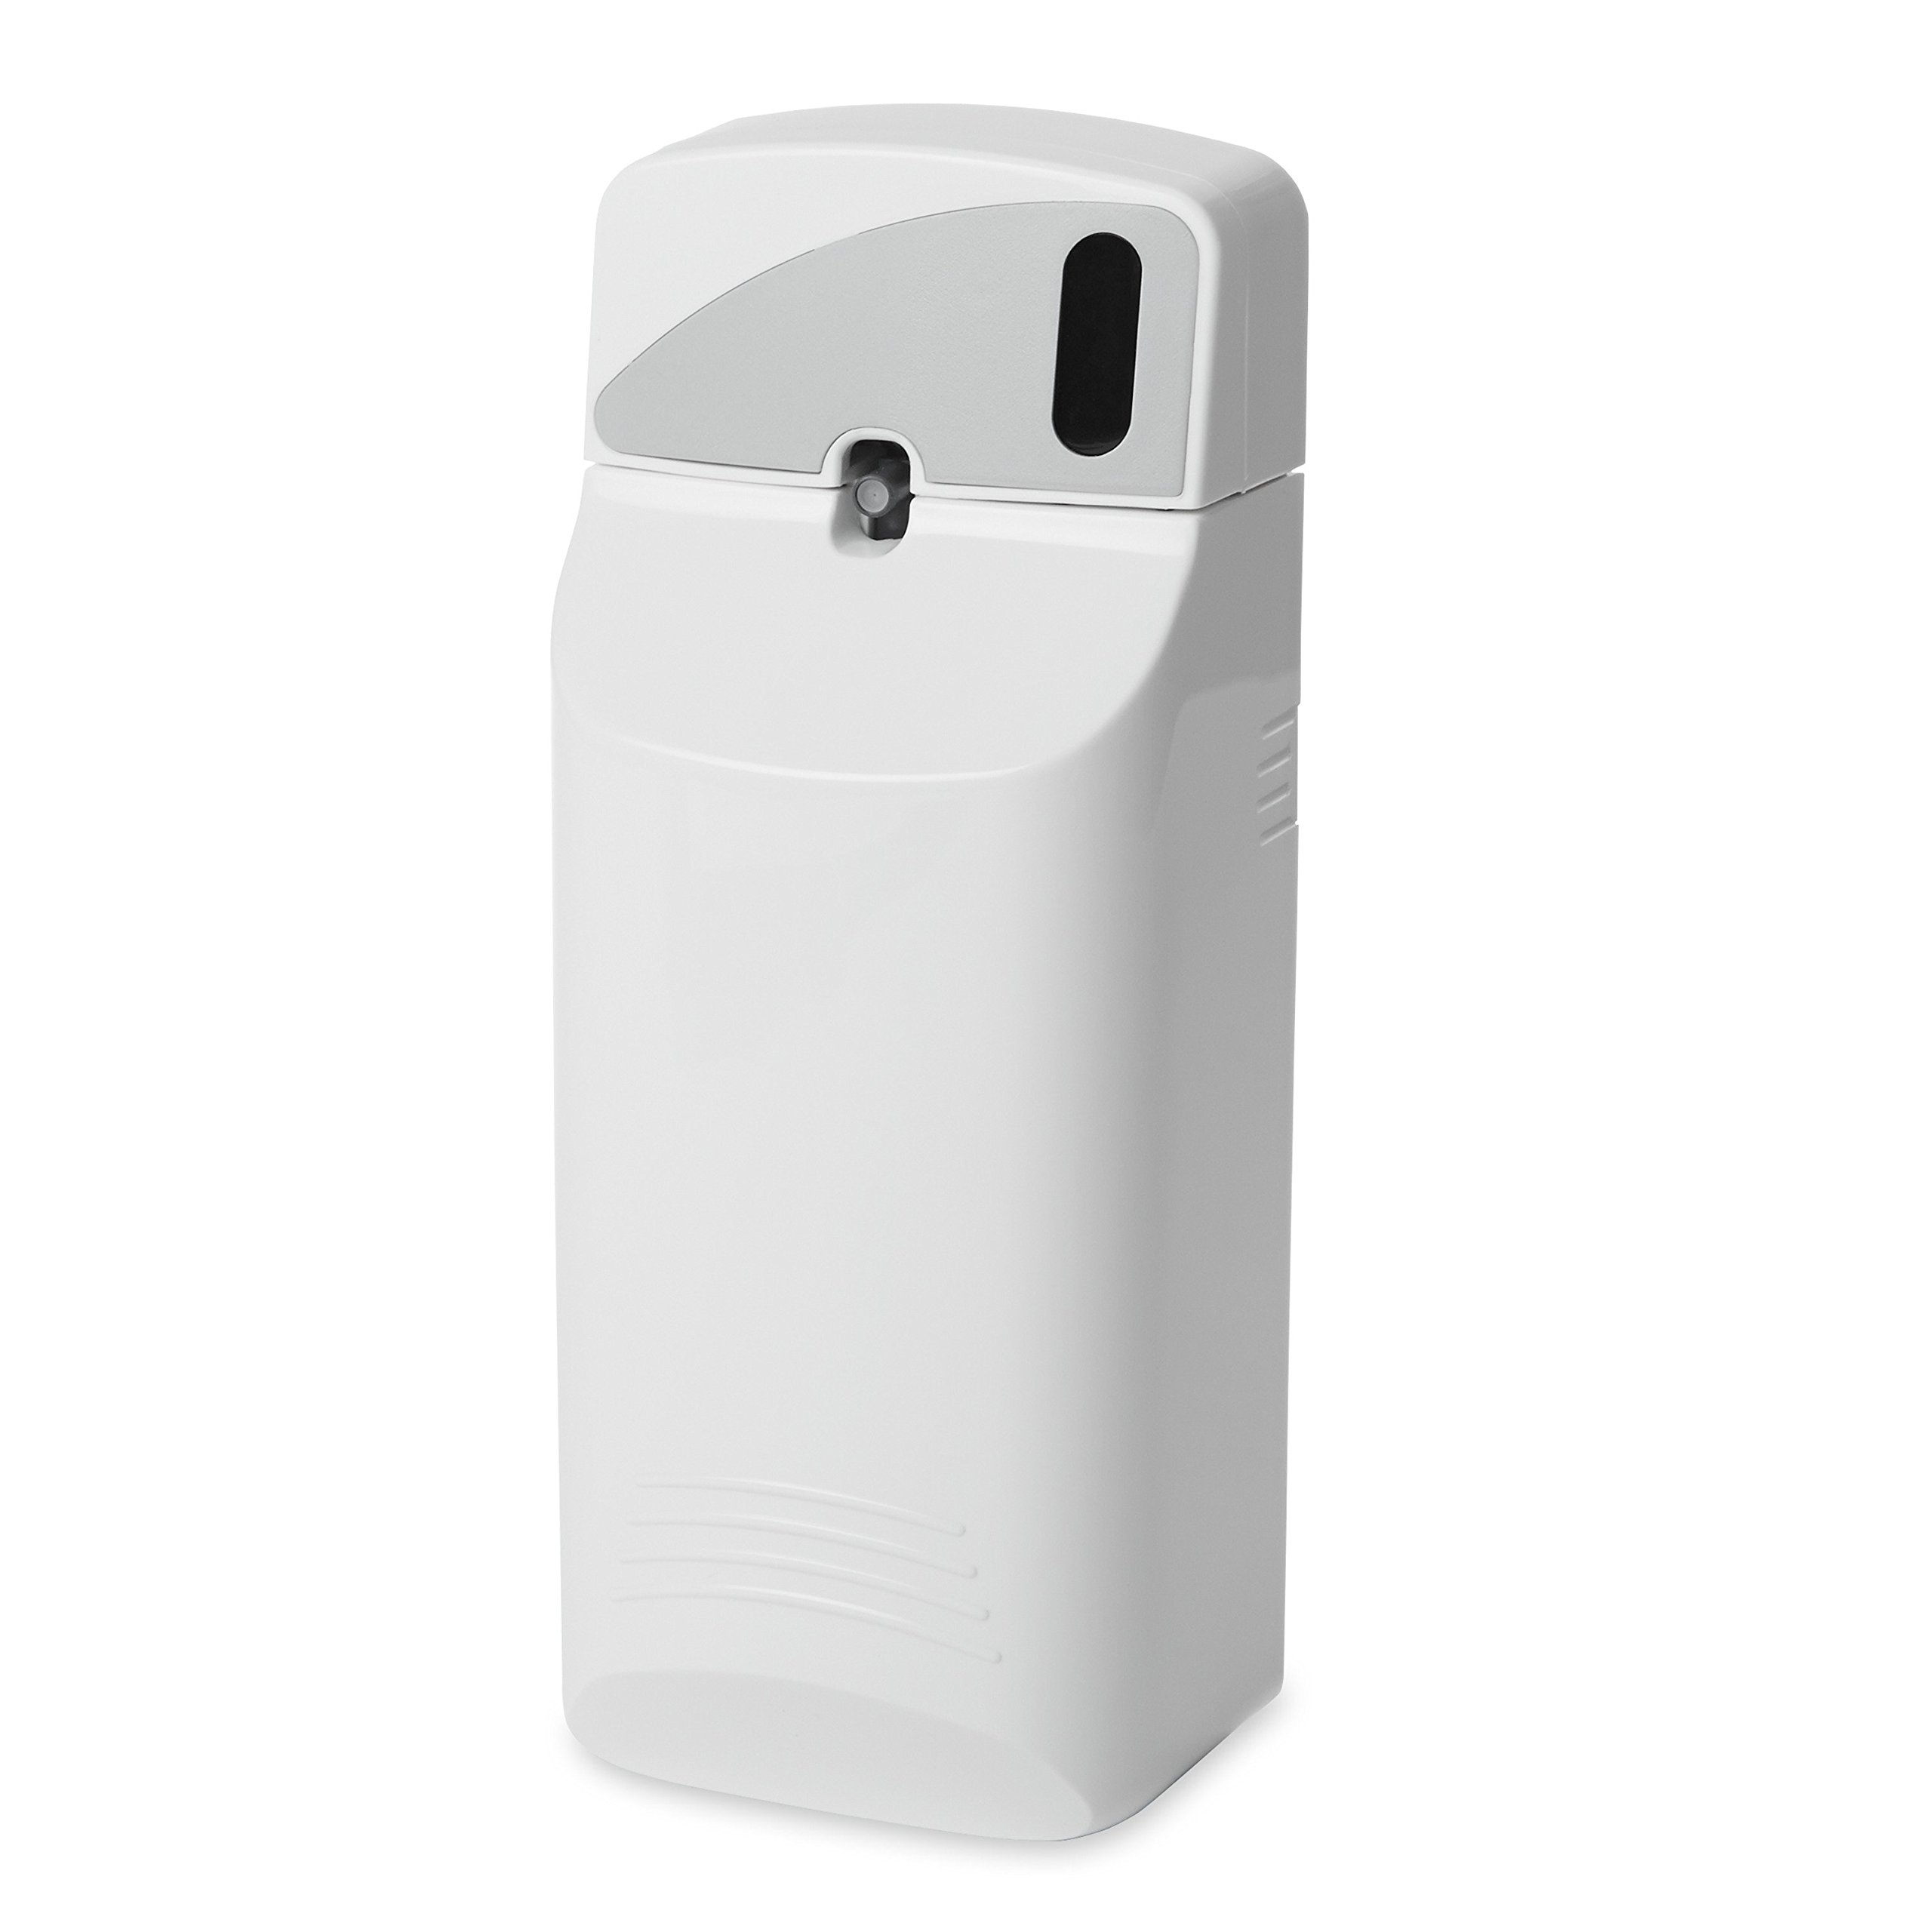 Rubbermaid Commercial 401375 Microburst 9000 Aerosol Odor Control Economizer Dispenser, White by Rubbermaid Commercial Products (Image #3)